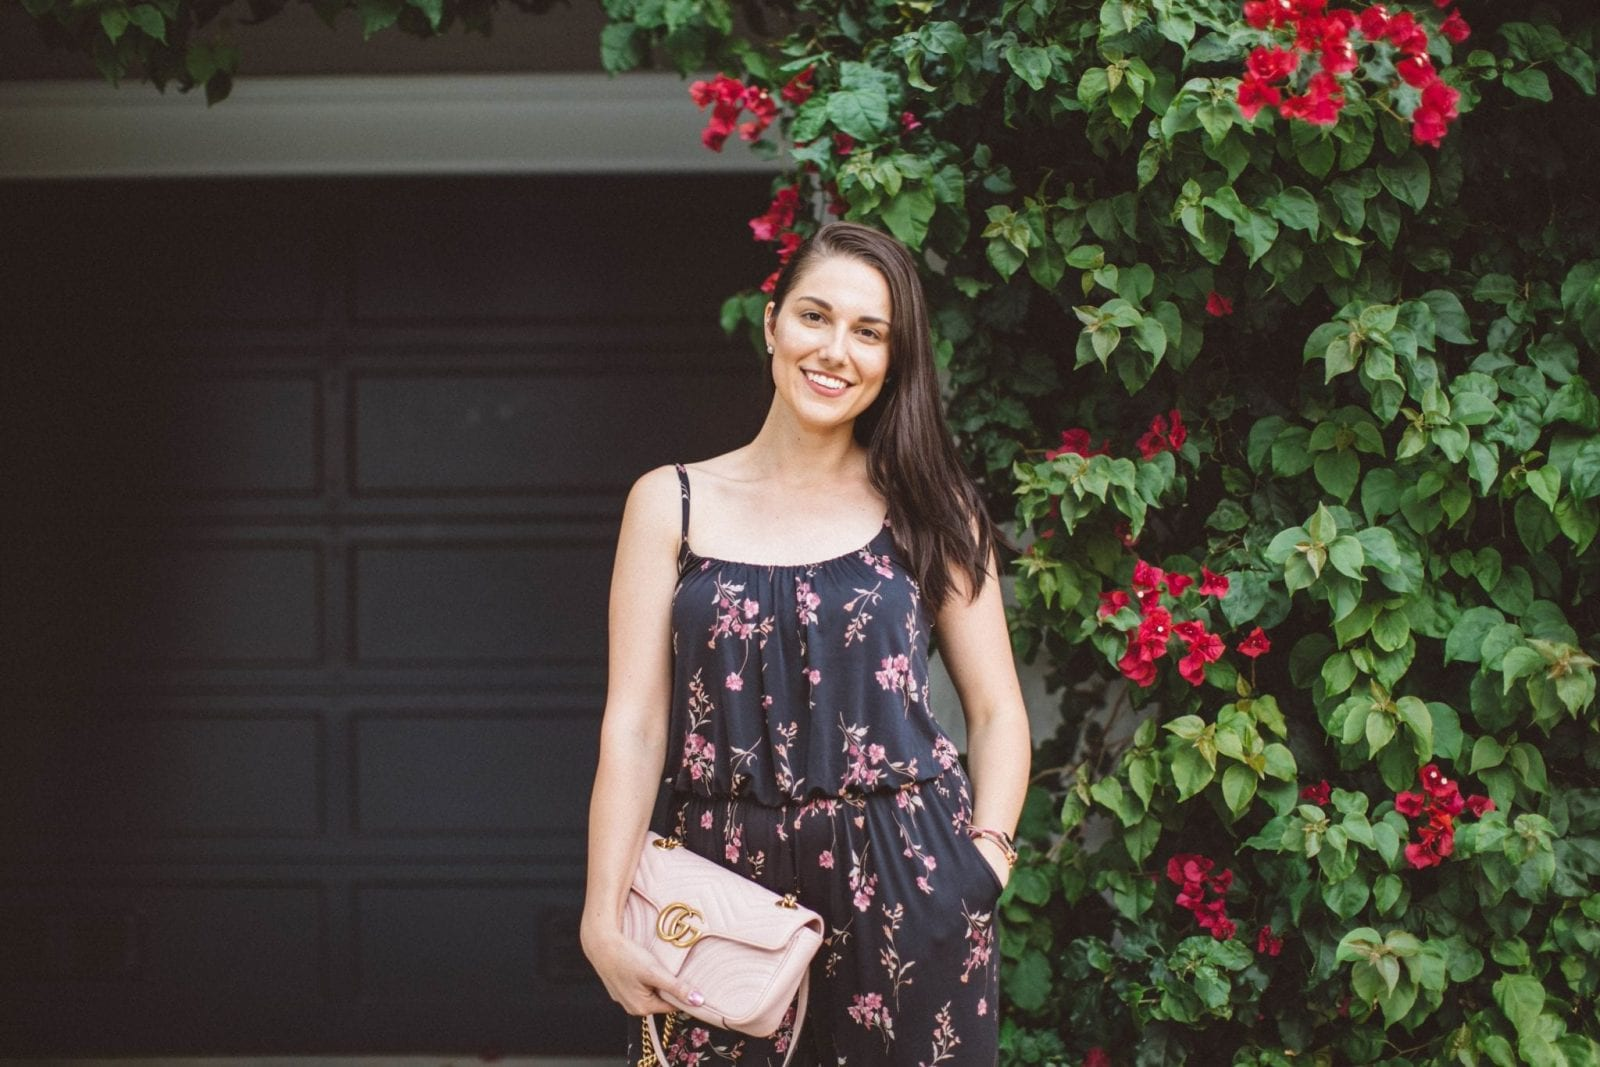 Enjoying the San Francisco Weather in a Floral Romper